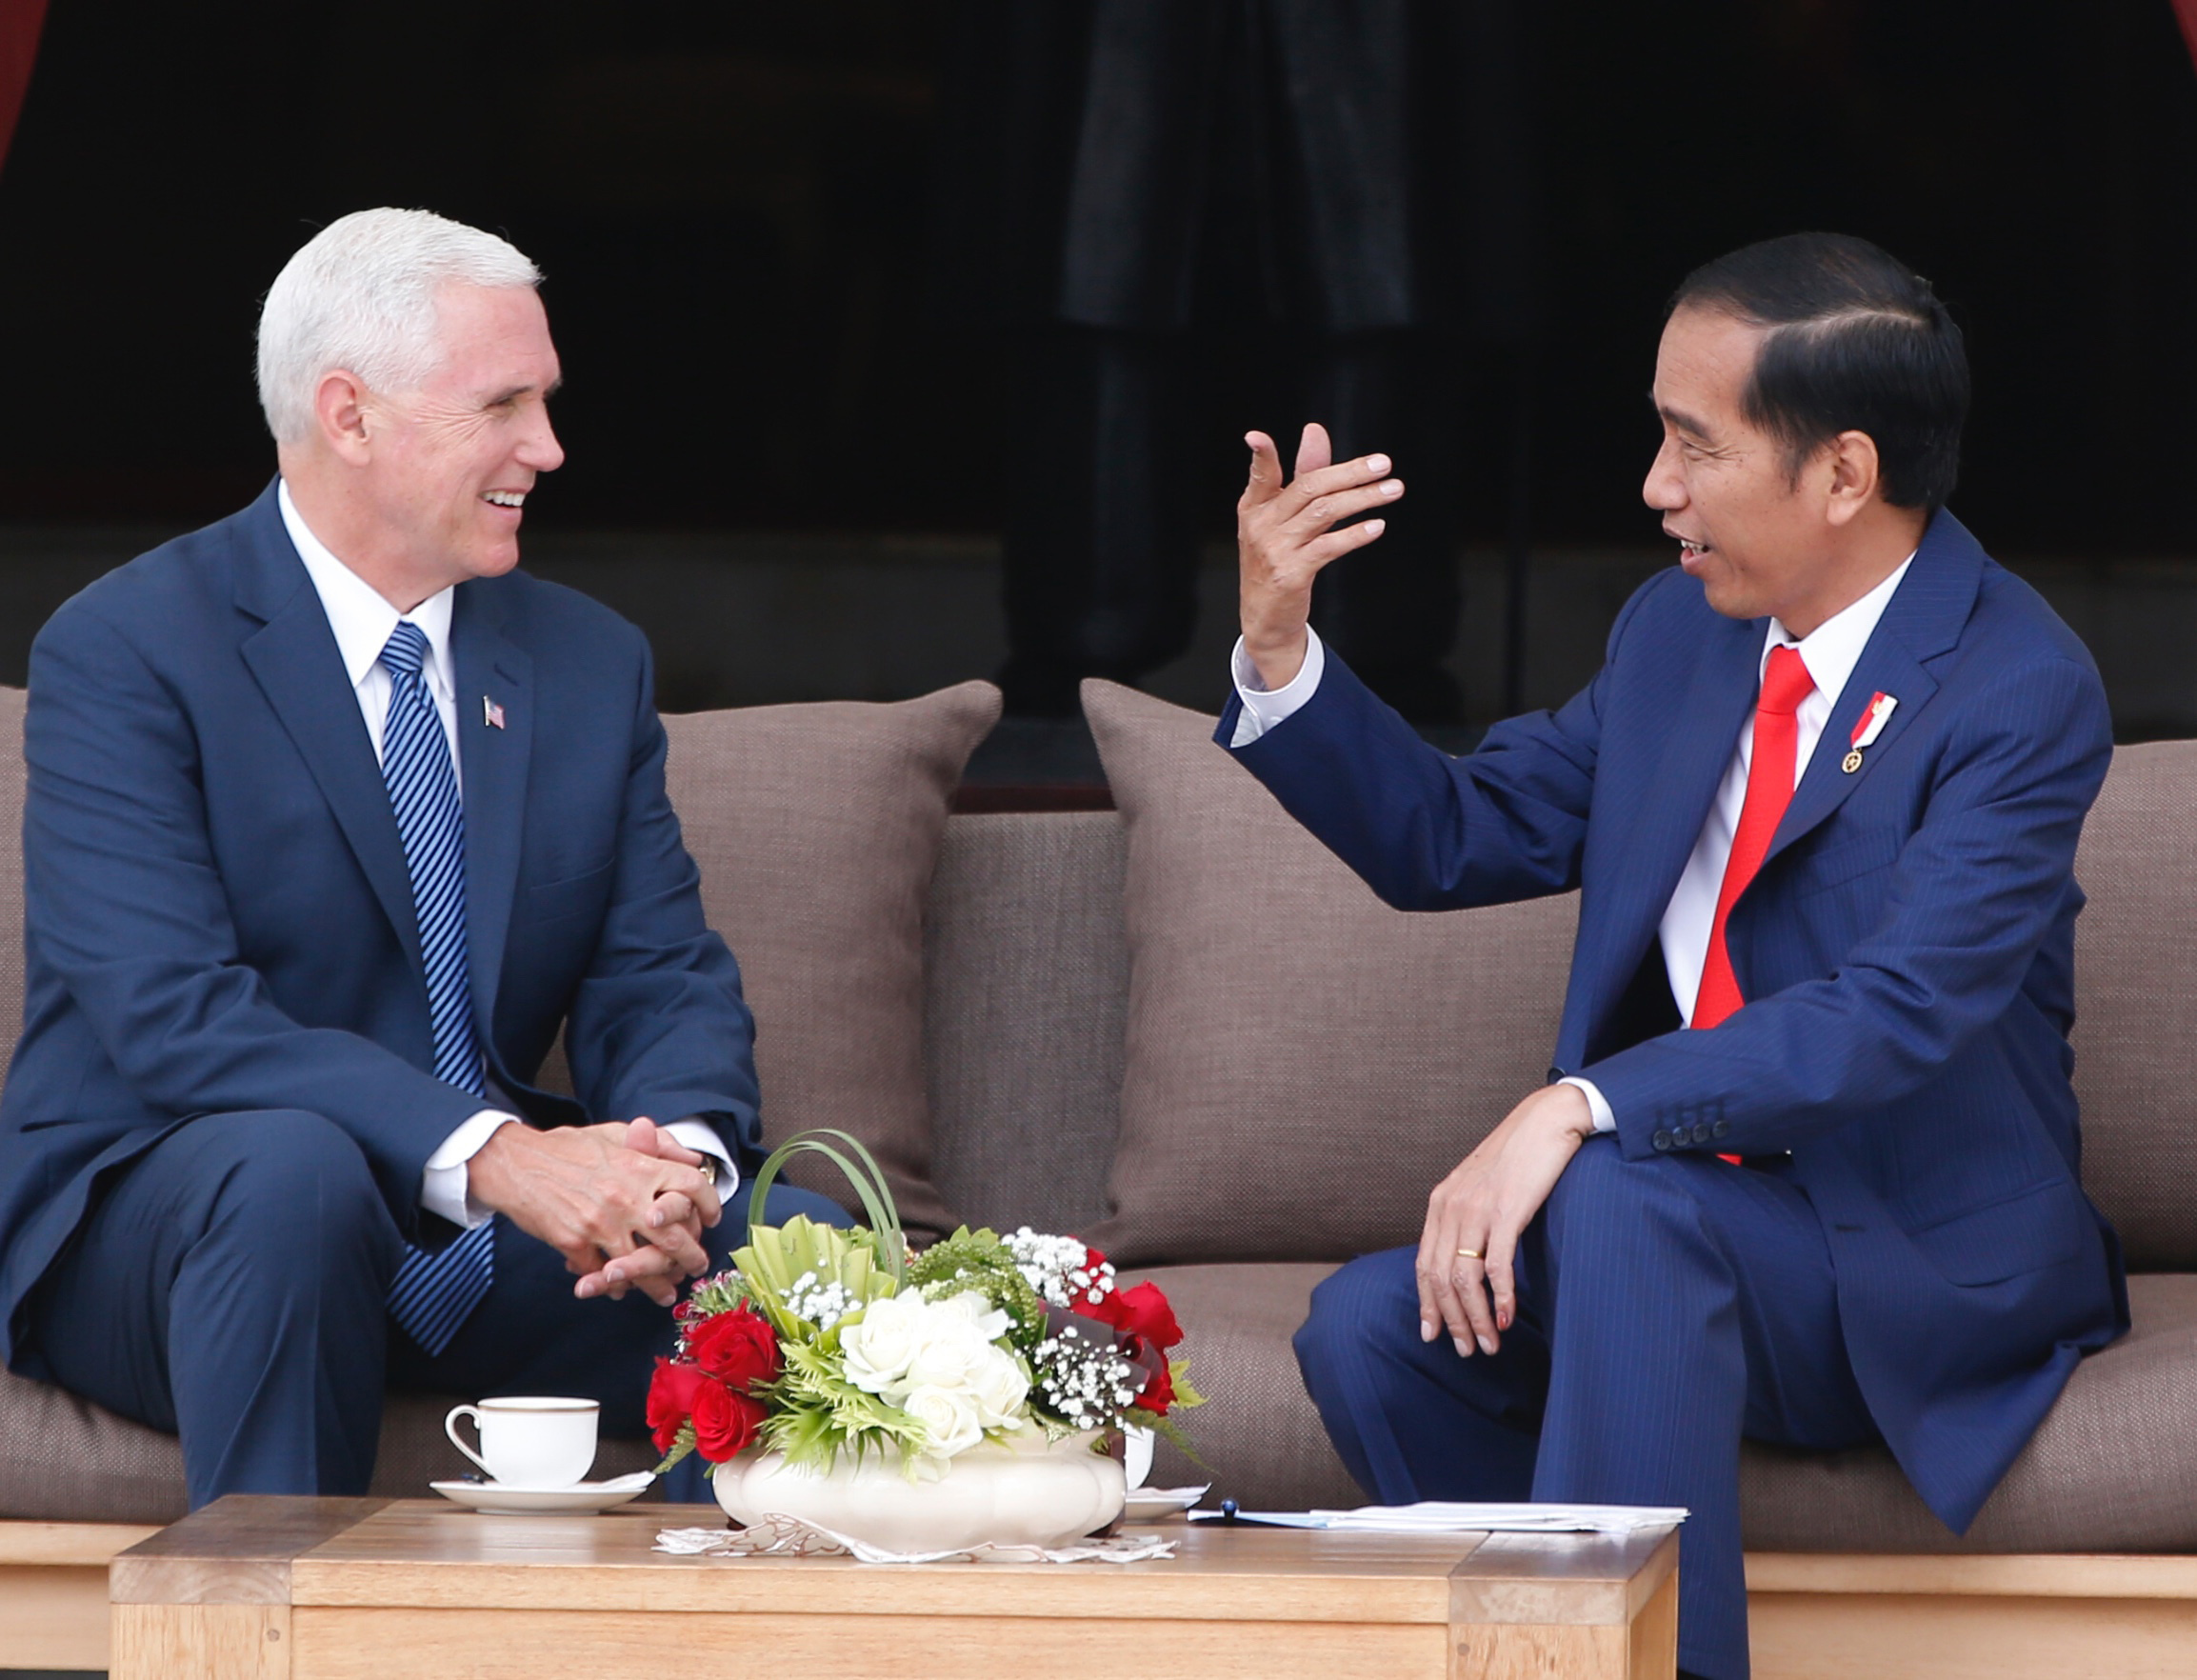 Indonesia US Pence-3 U.S. Vice President Mike Pence, left, meets with Indonesian President Joko Widodo at the presidential palace in Jakarta, Indonesia Thursday, April 20, 2017.(Darren Whiteside/Pool Photo via AP)